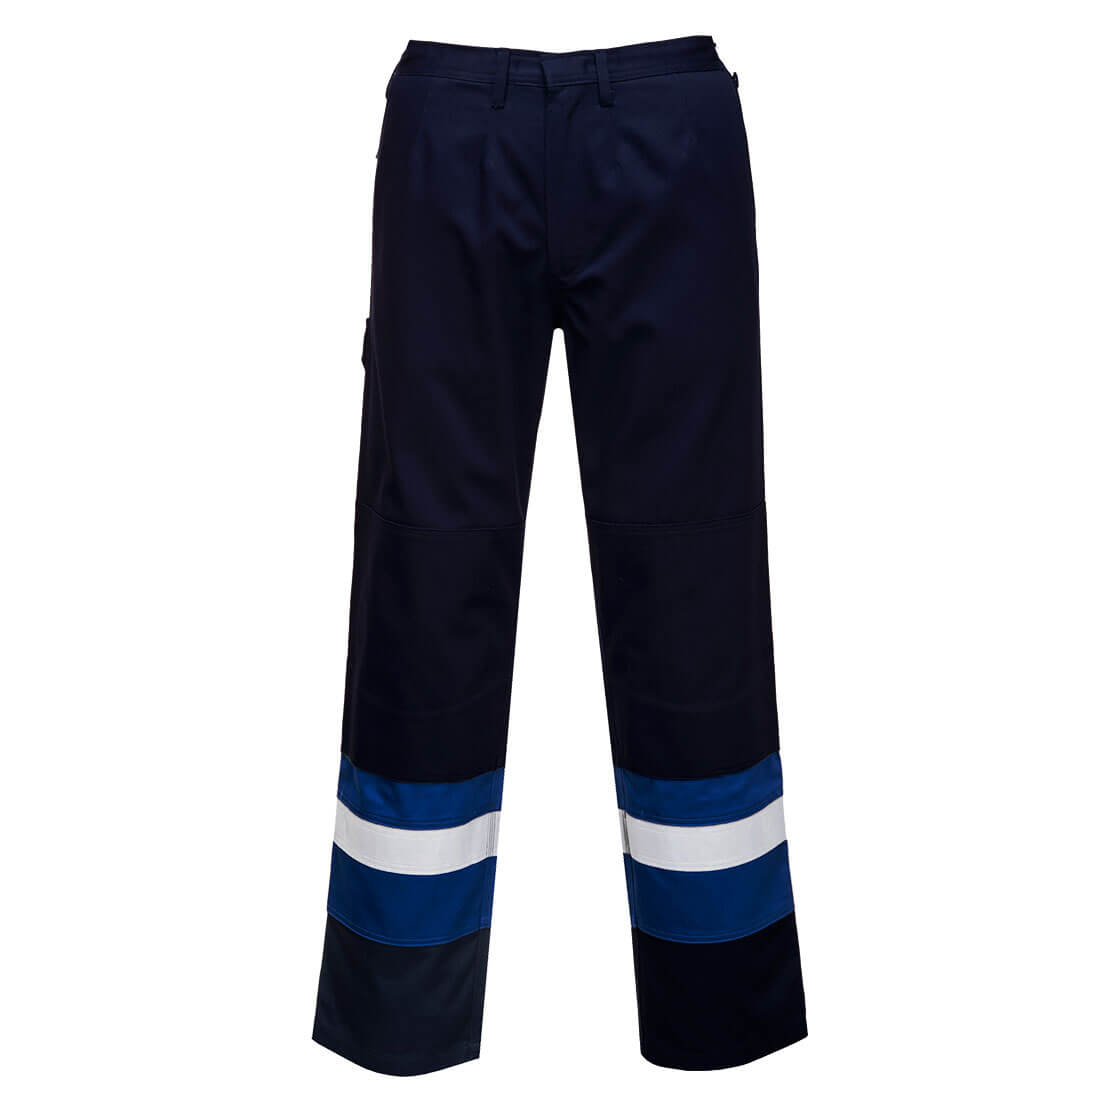 Image of Biz Flame Mens Flame Resistant Plus Trousers Navy / Royal Medium 32""